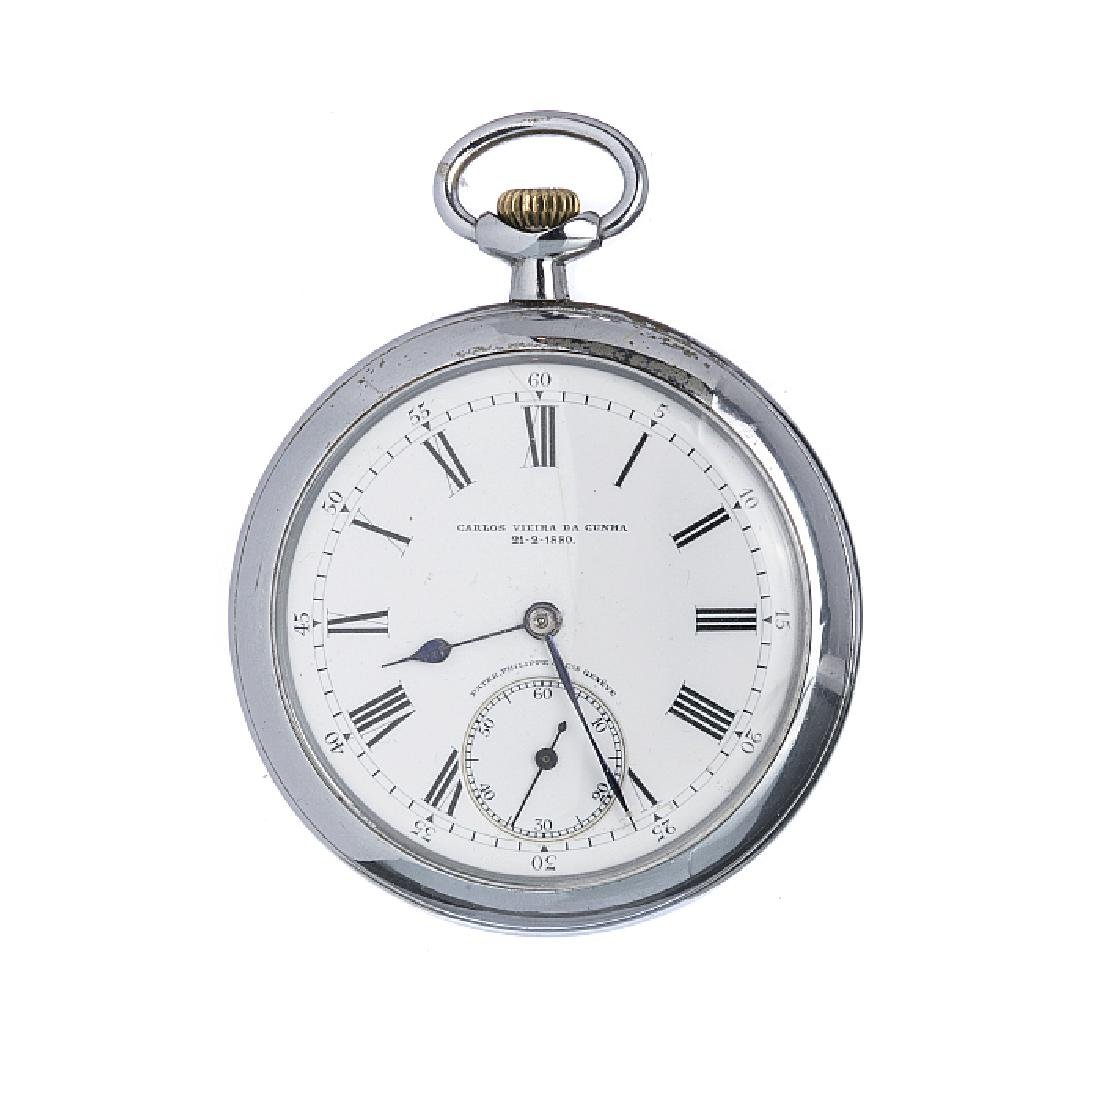 PATEK PHILIPPE - Pocket watch